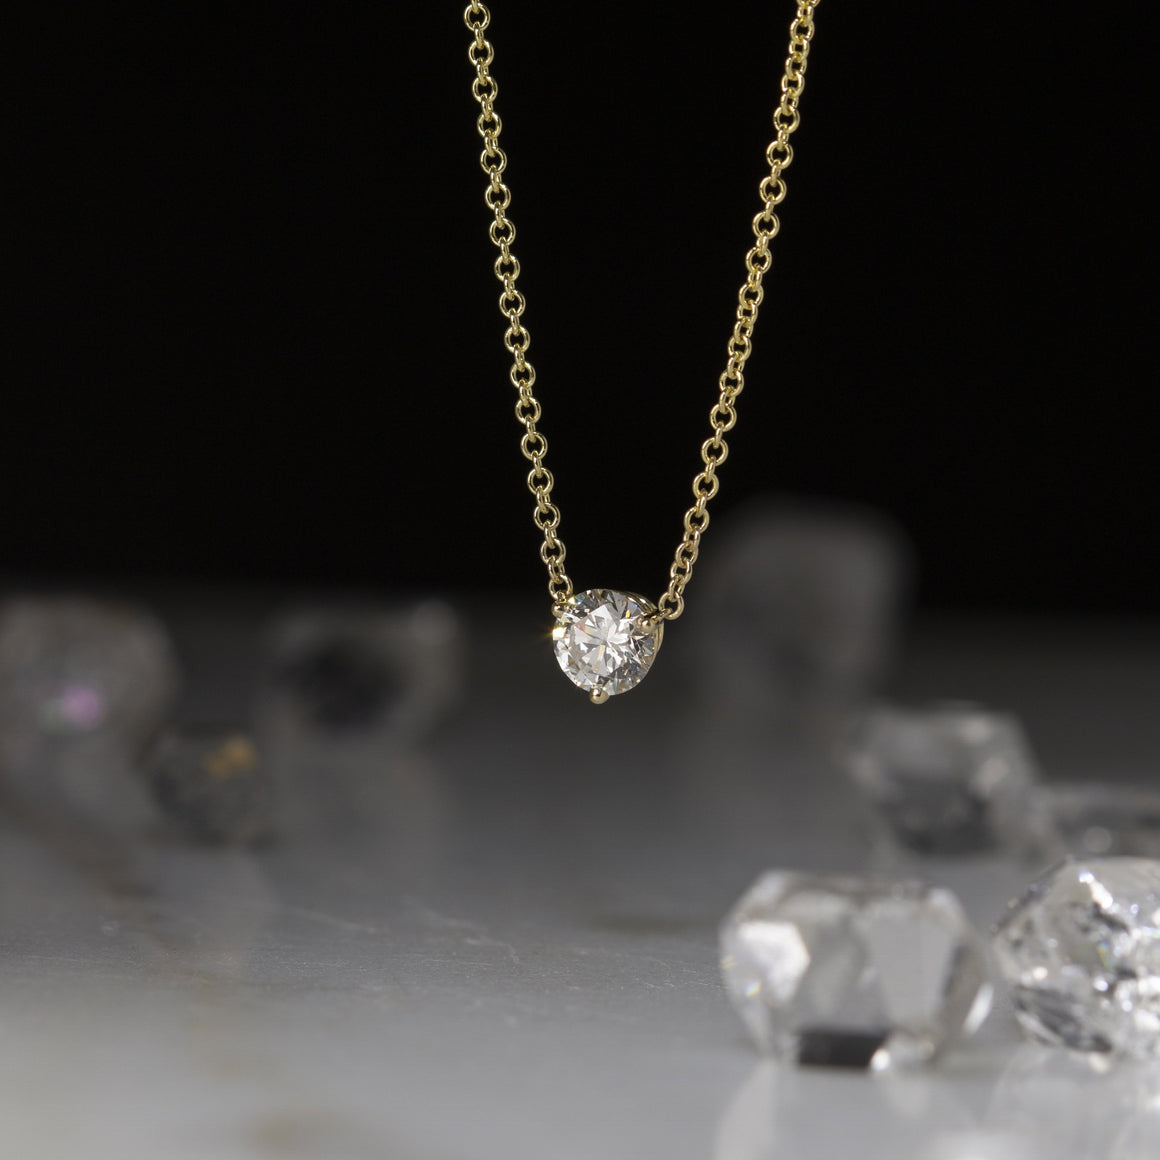 Diamond Solitaire Pendant in Yellow Gold - 0.50ct